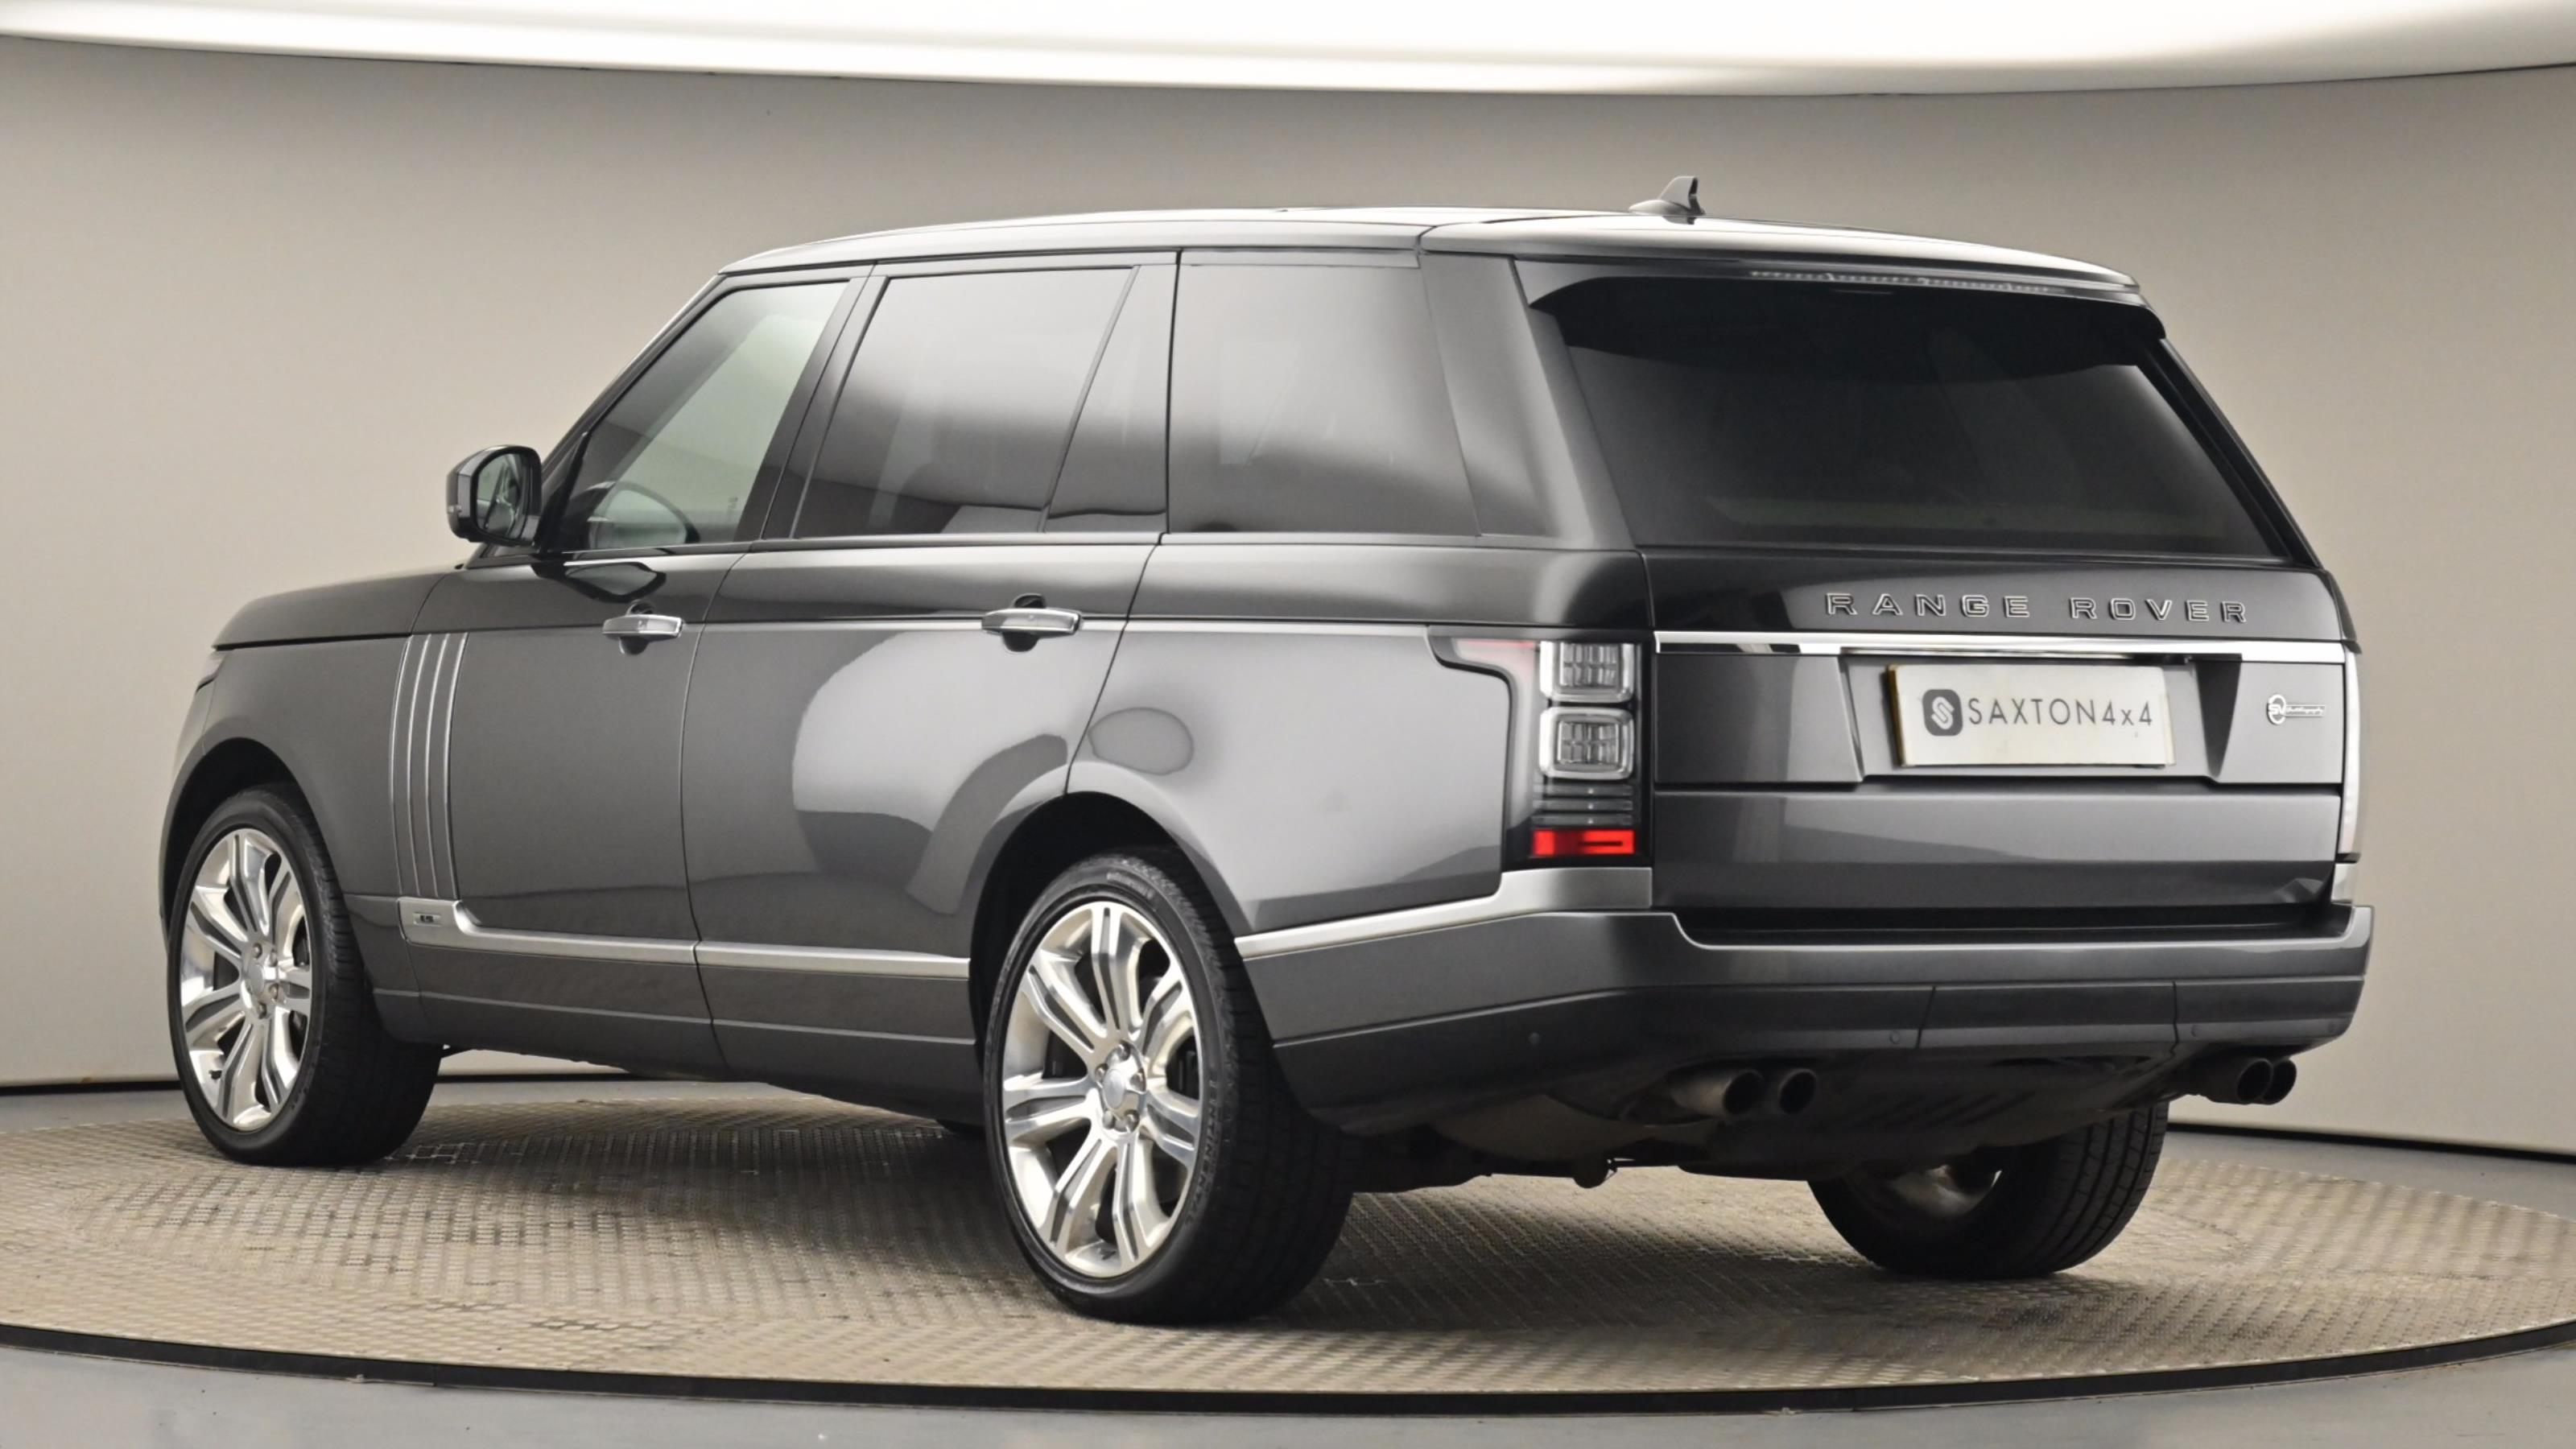 Used 2016 Land Rover RANGE ROVER 5.0 V8 S/C SVAutobiography LWB 4dr Auto GREY at Saxton4x4